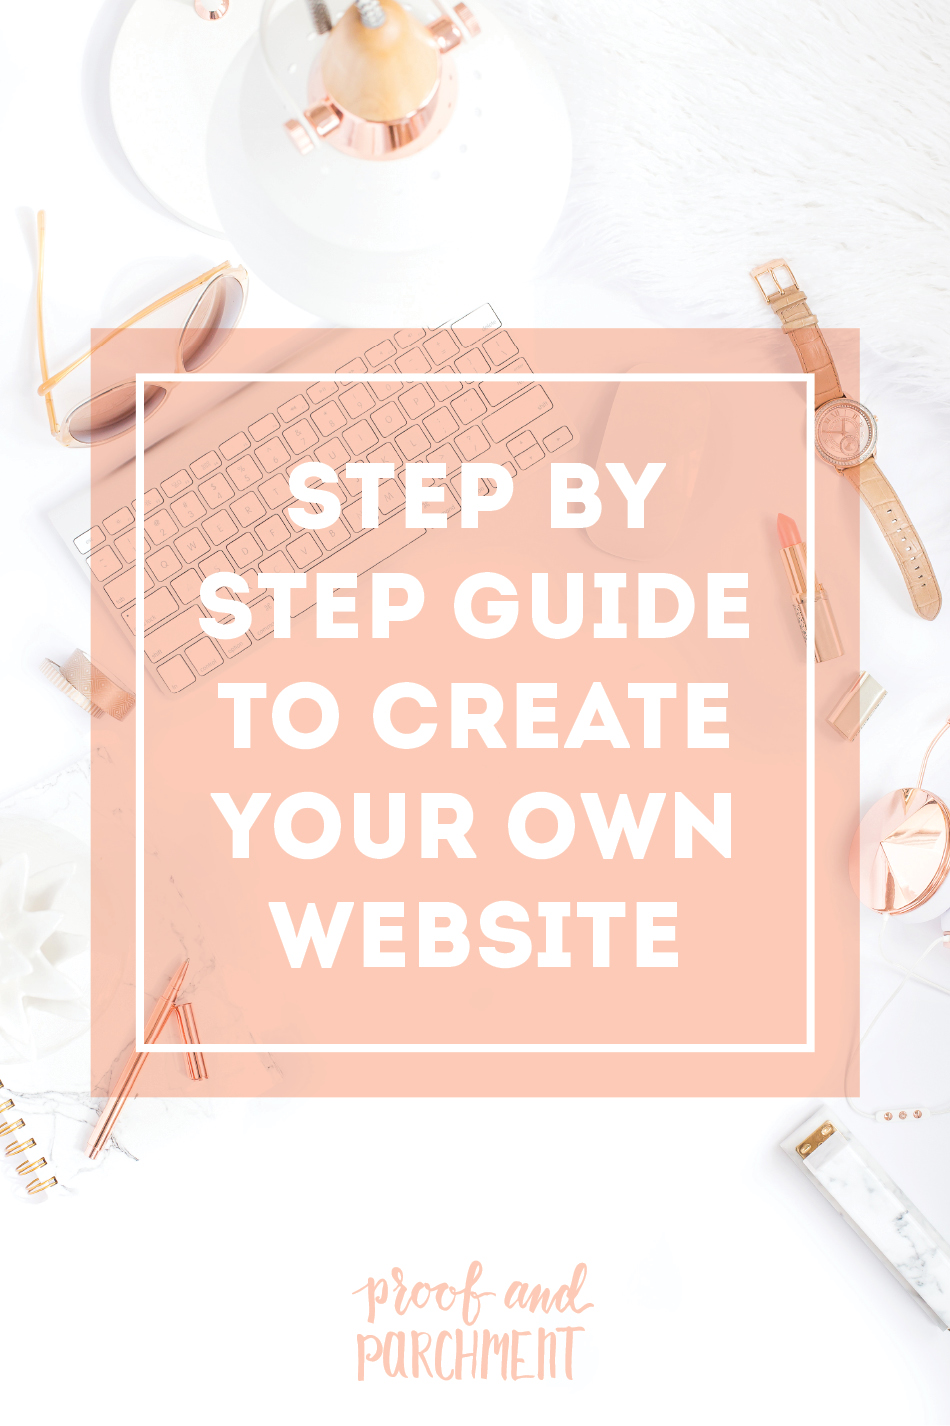 Your Step By Step Guide To The: A SImple Step By Step Guide To Create Your Own Website